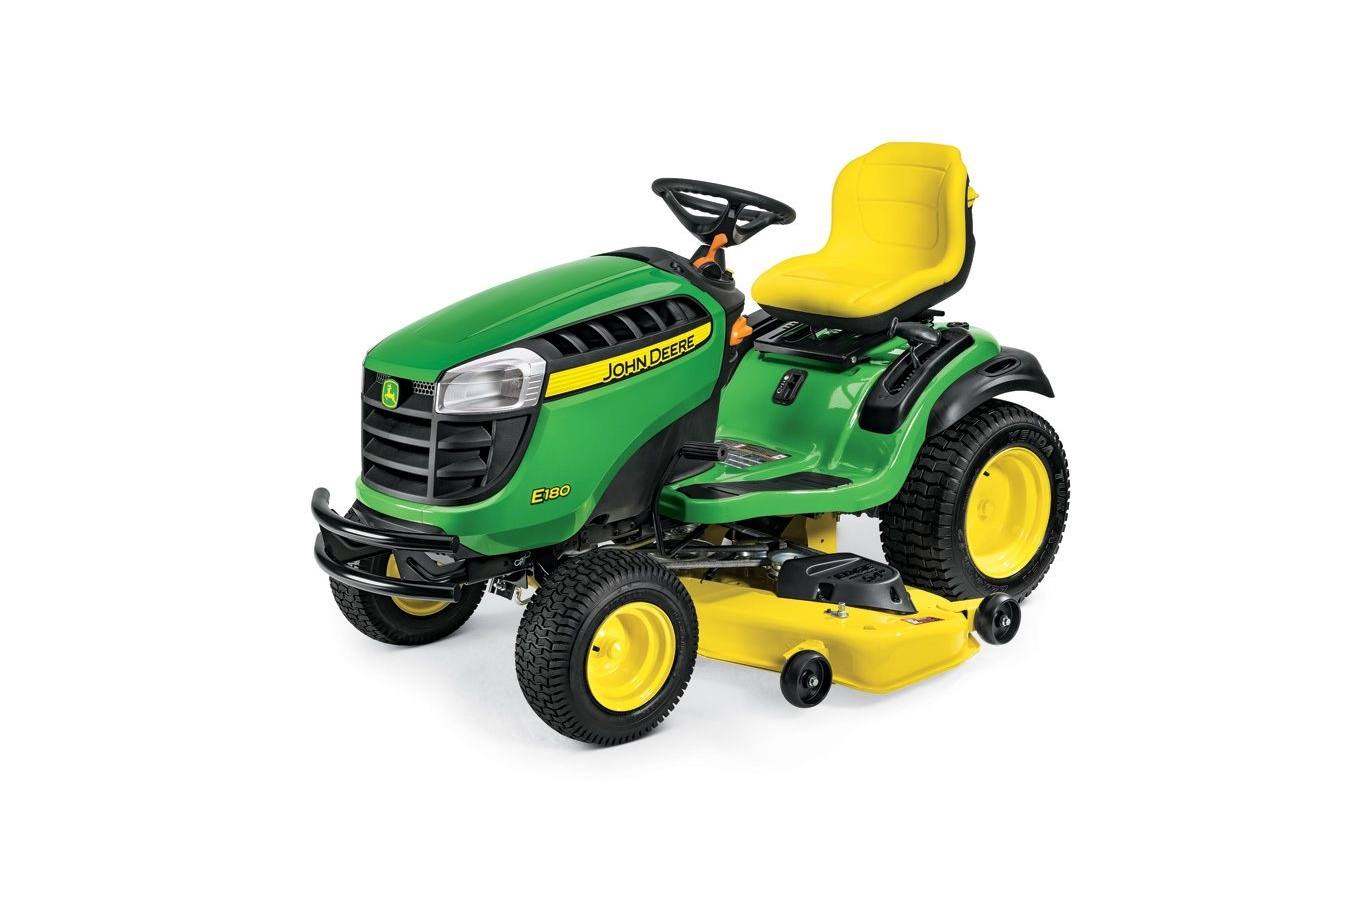 New Inventory from John Deere and Land Pride Art's Lawn